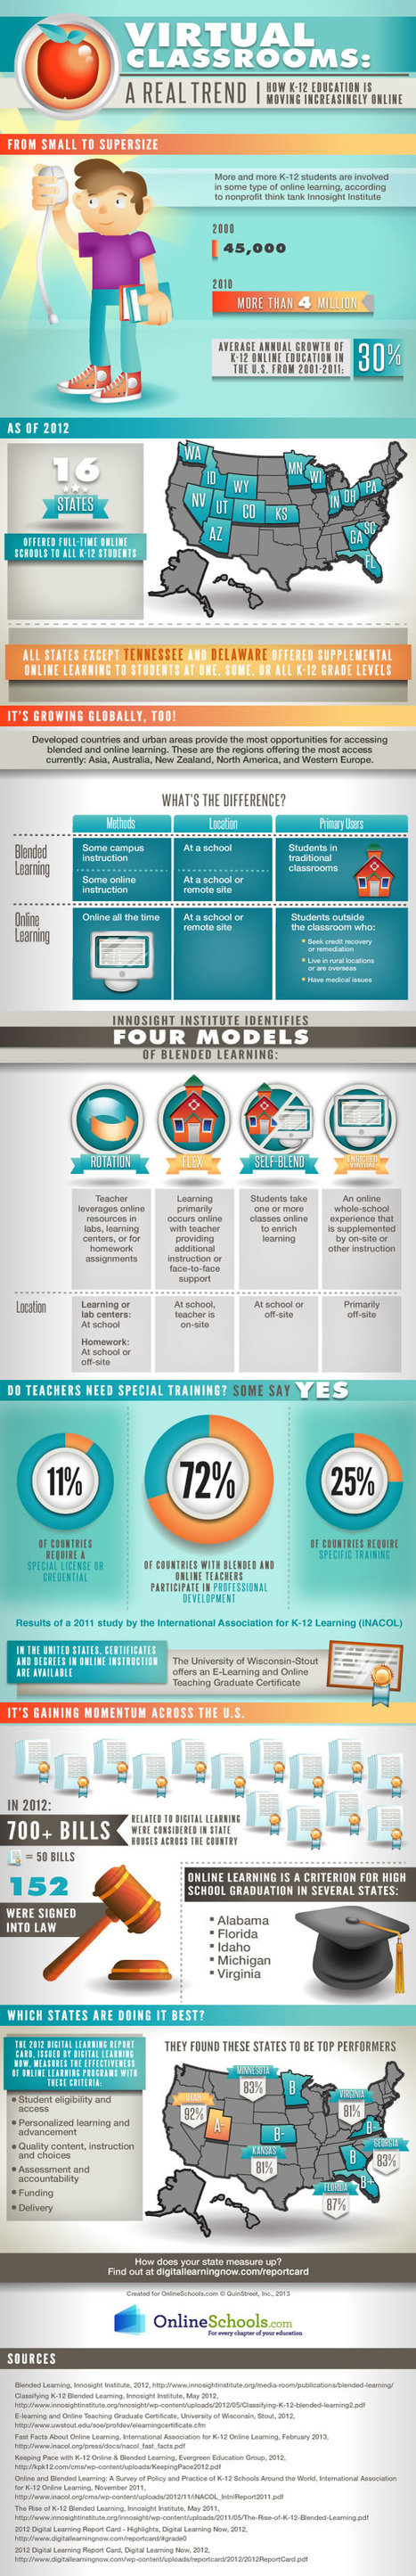 The Teacher's Quick Guide To Blended Learning [Infographic] | Using Technology in Schools | Scoop.it